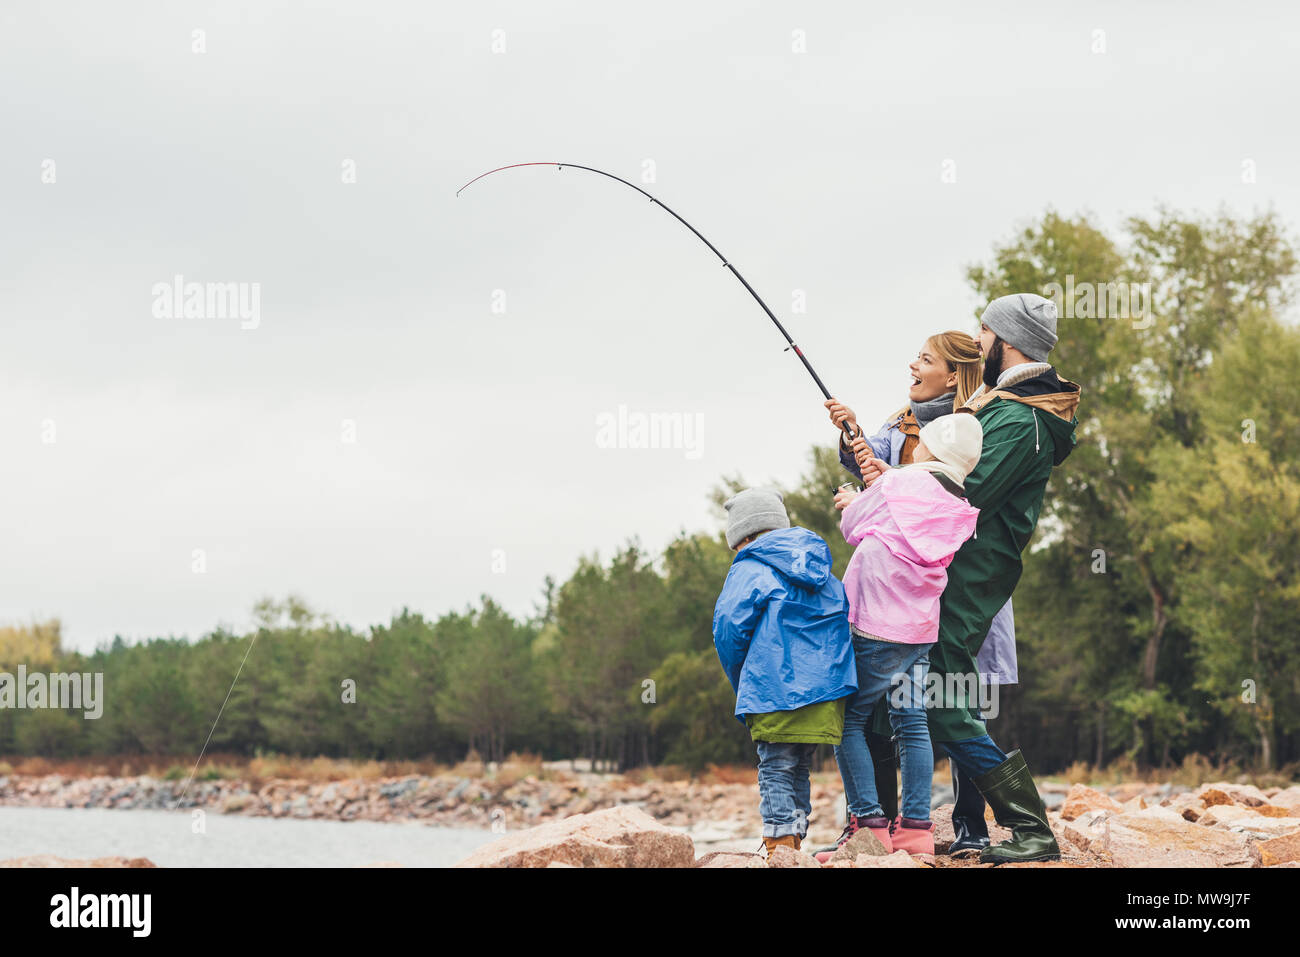 side view of young family fishing together - Stock Image